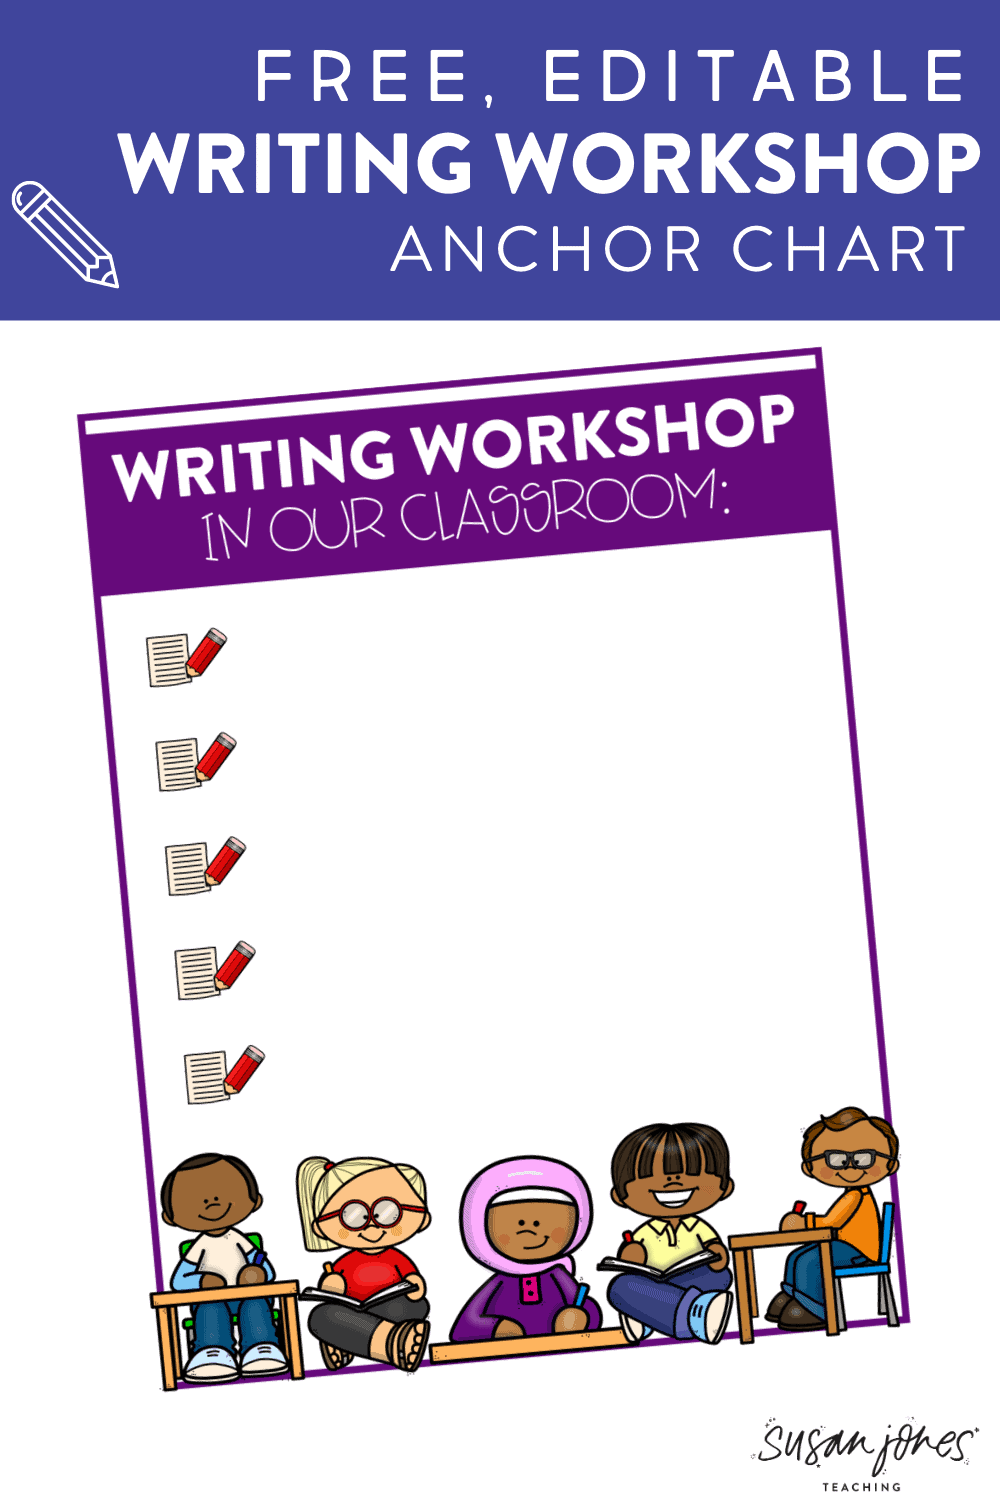 Grab a free anchor chart for launching writing workshop in a K-2 classroom! You can insert your own expectations for students and display in your class! Head over to the blog post to download your free copy.